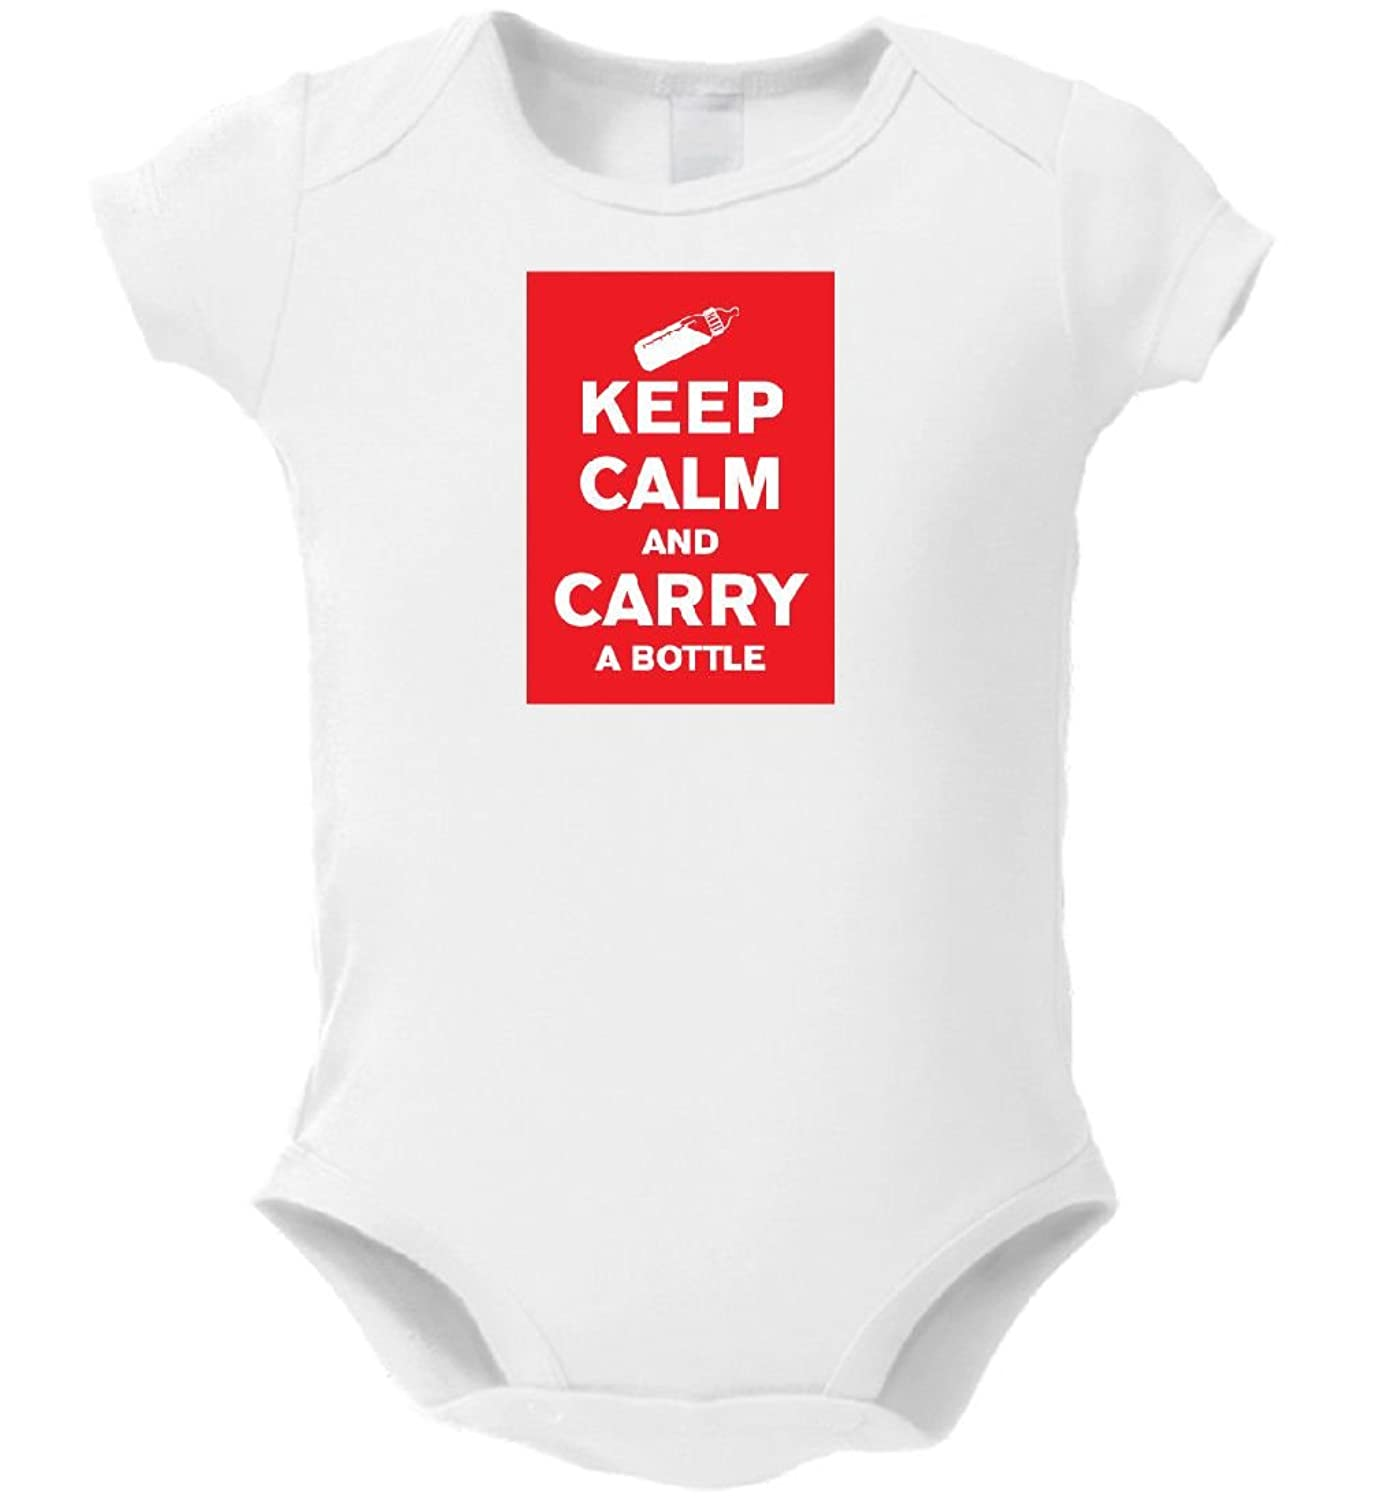 Dustin clothing series Keep Calm and Carry A Bottle Baby Boys Girls Toddlers Funny Romper 0-24M